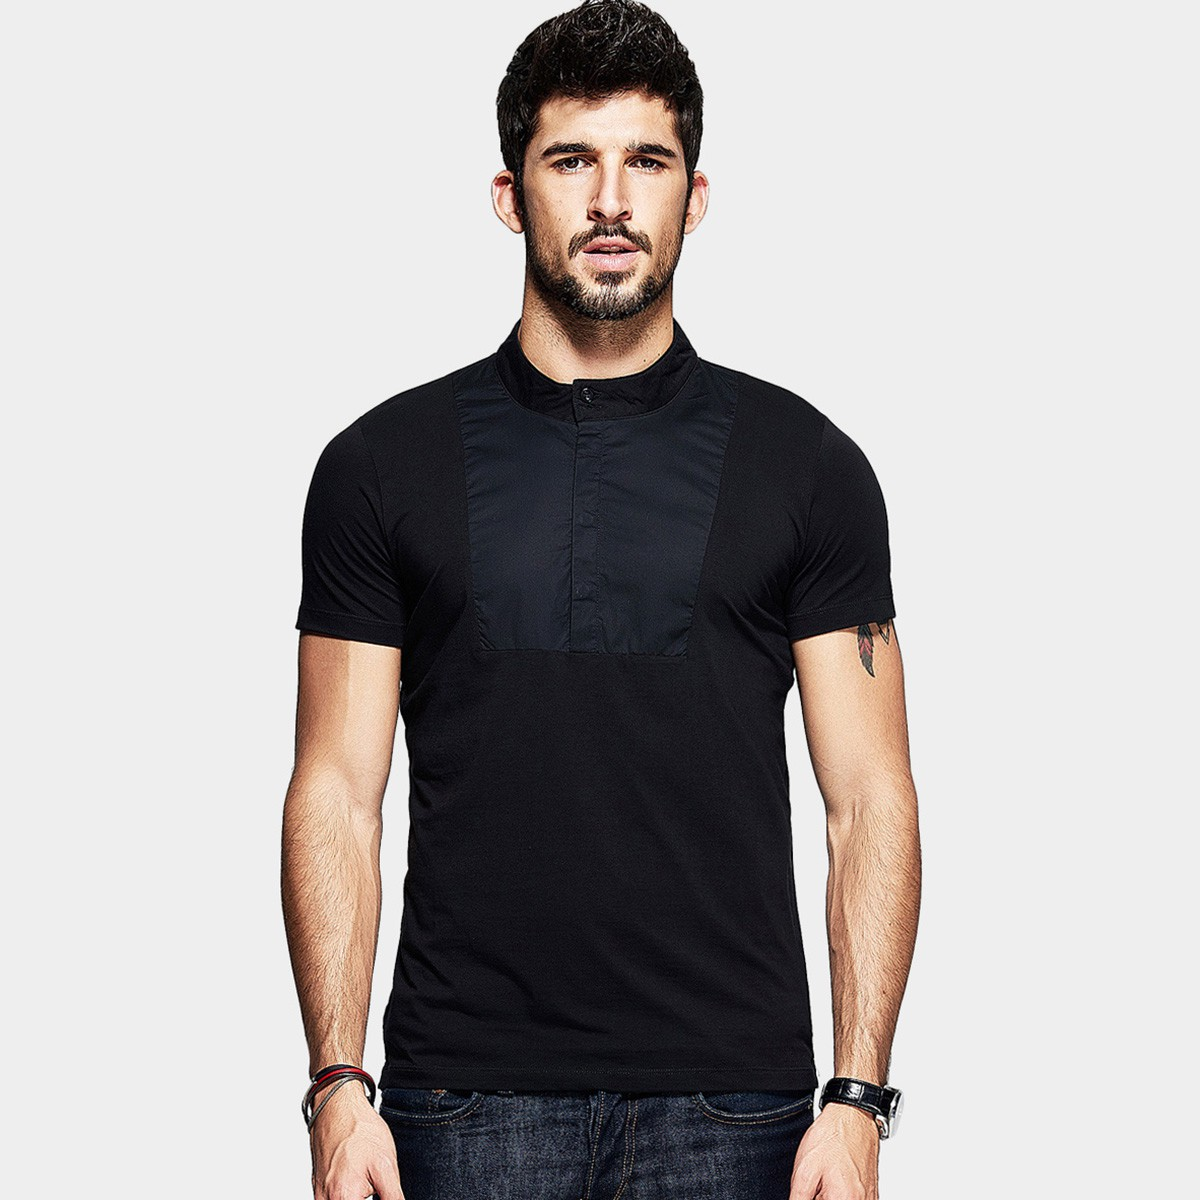 Kuegou Patchwork Tight Fit Crew Button Neck Black Tee Lt 1755 0cm